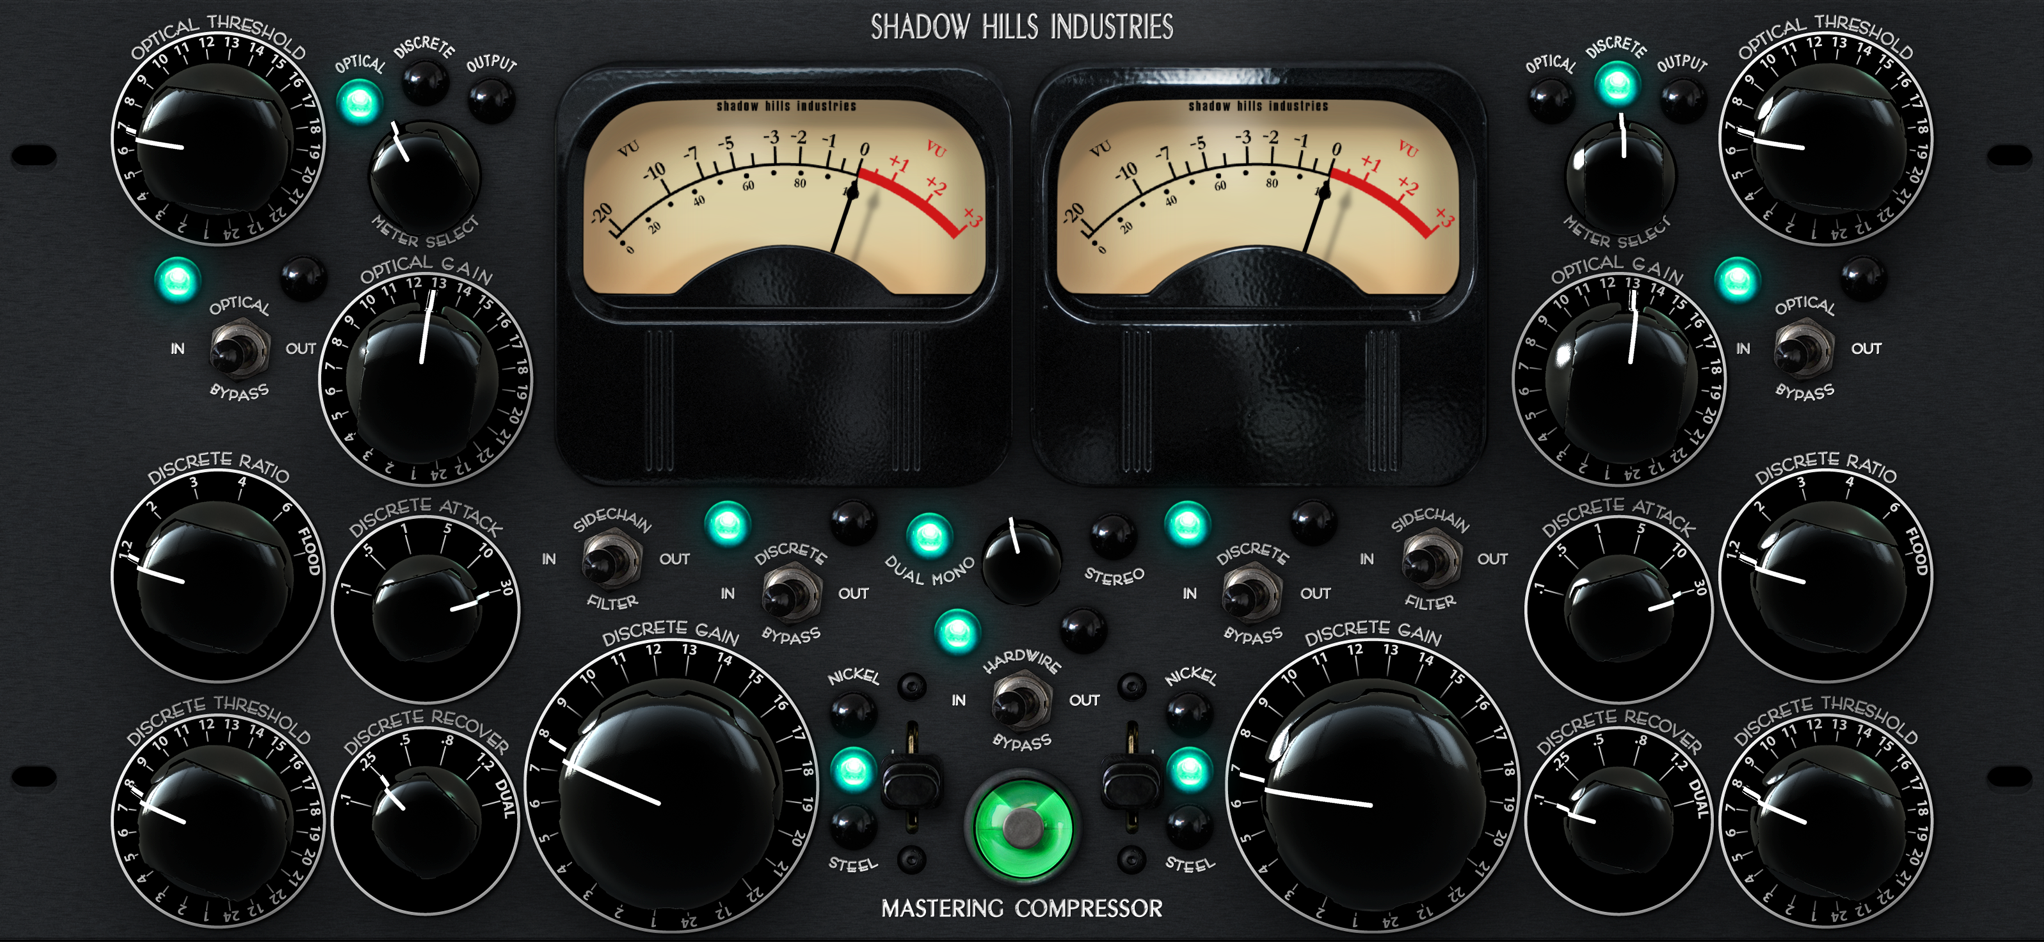 Shadow Hills Mastering compressor settings.